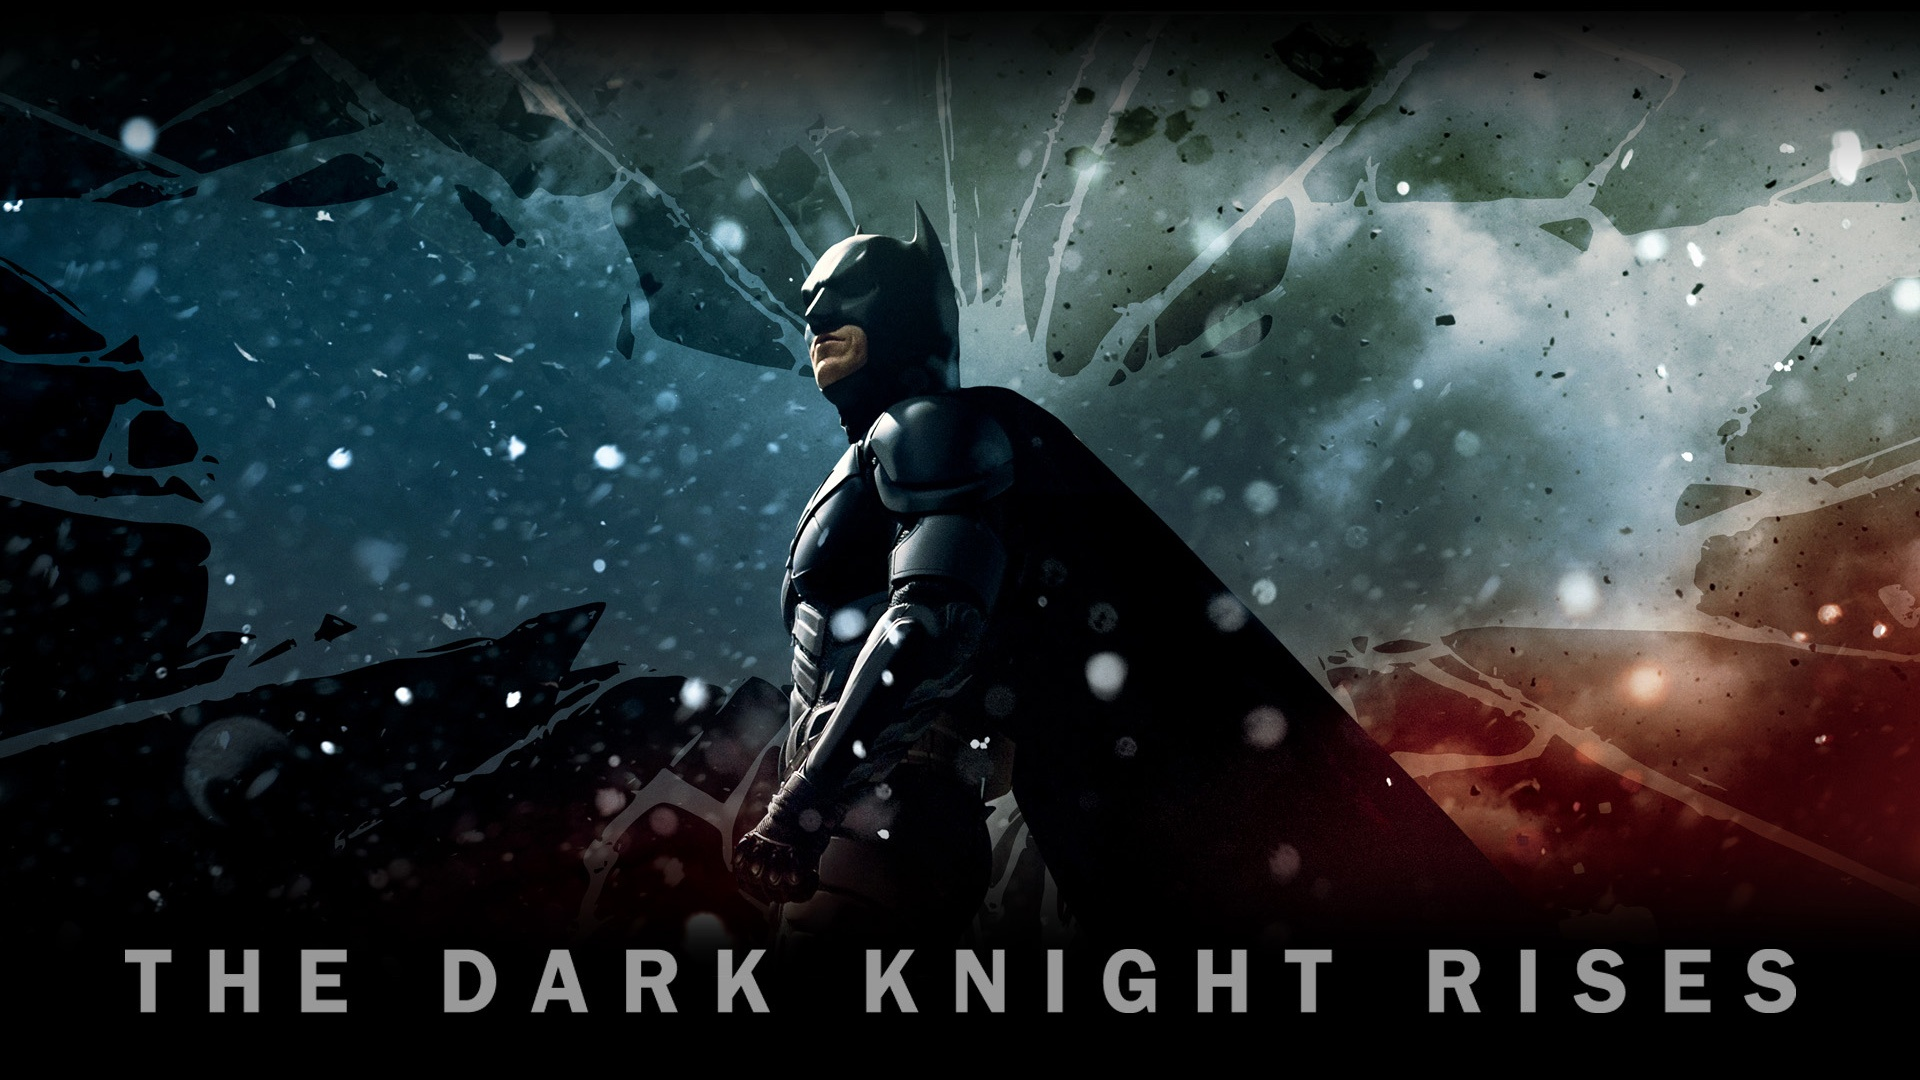 the dark knight rises official #4162606, 1920x1200 | all for desktop